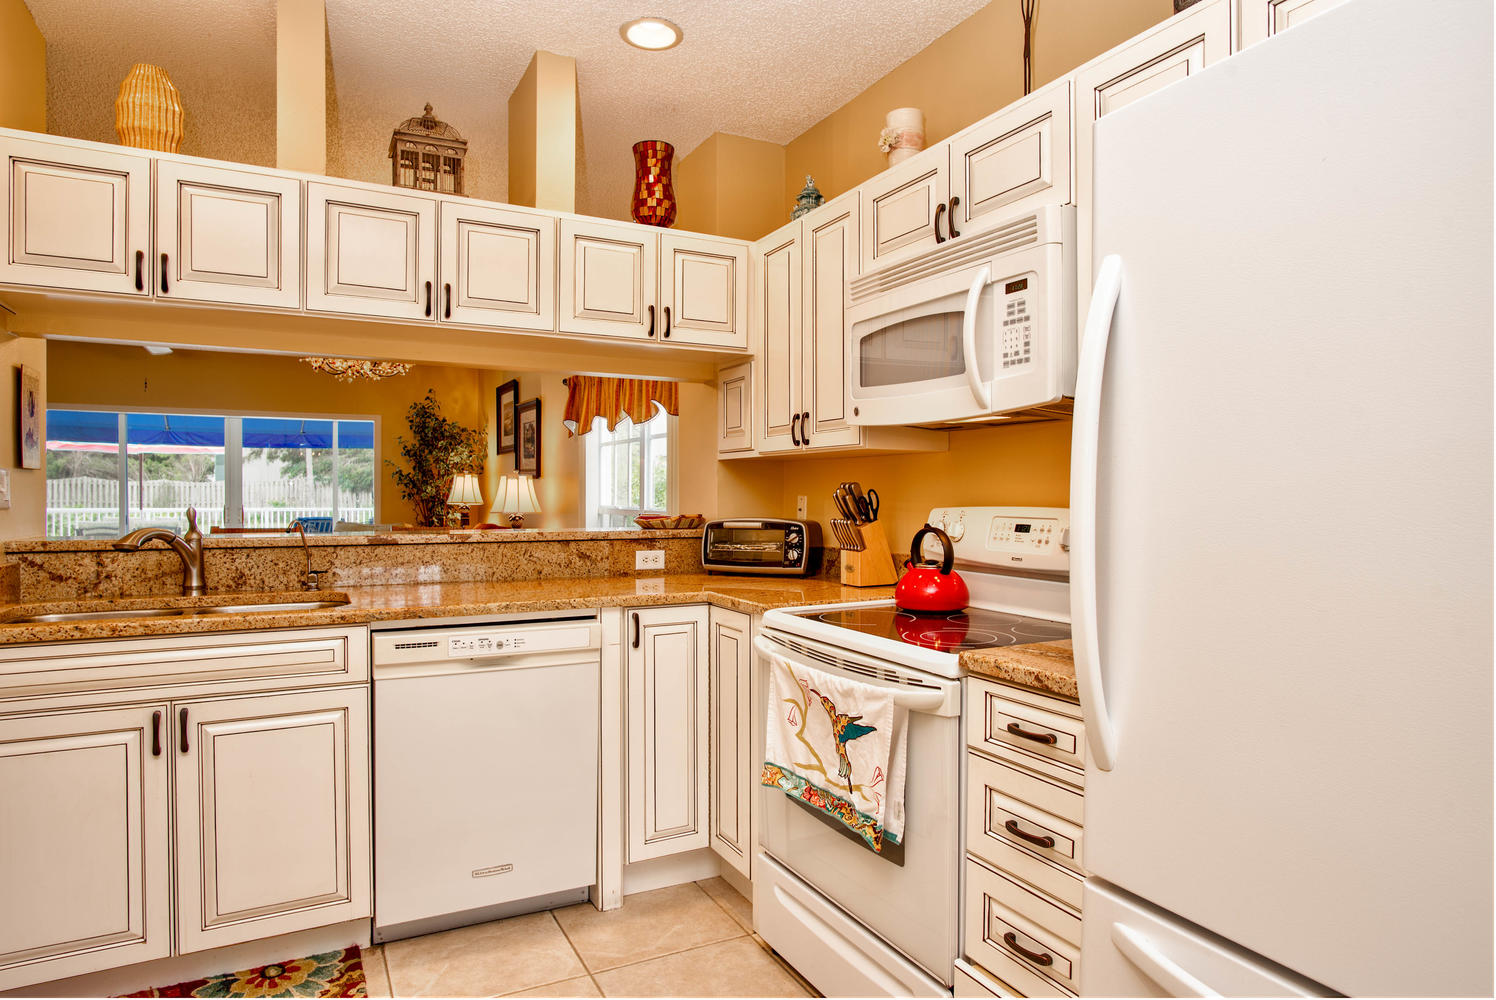 11525 Shipwatch Dr unit 1046-large-019-15-Kitchen-1497x1000-72dpi